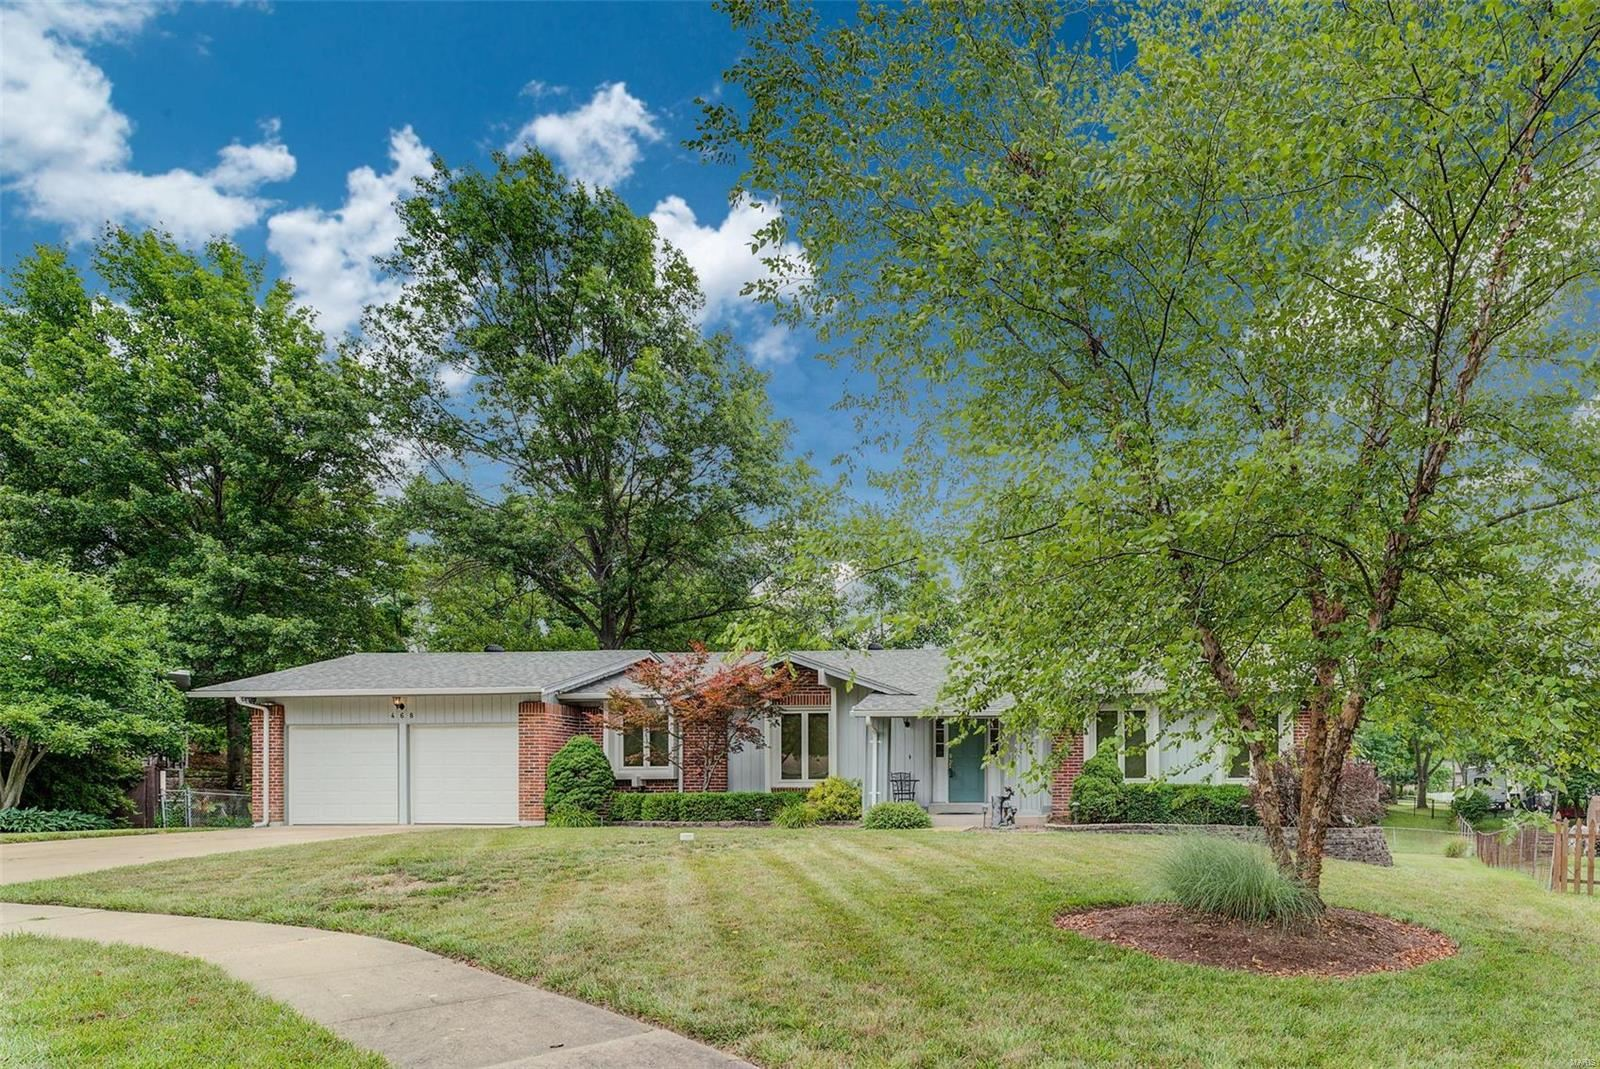 468 Cortequay Court, Manchester, MO 63021 - #: 20044190